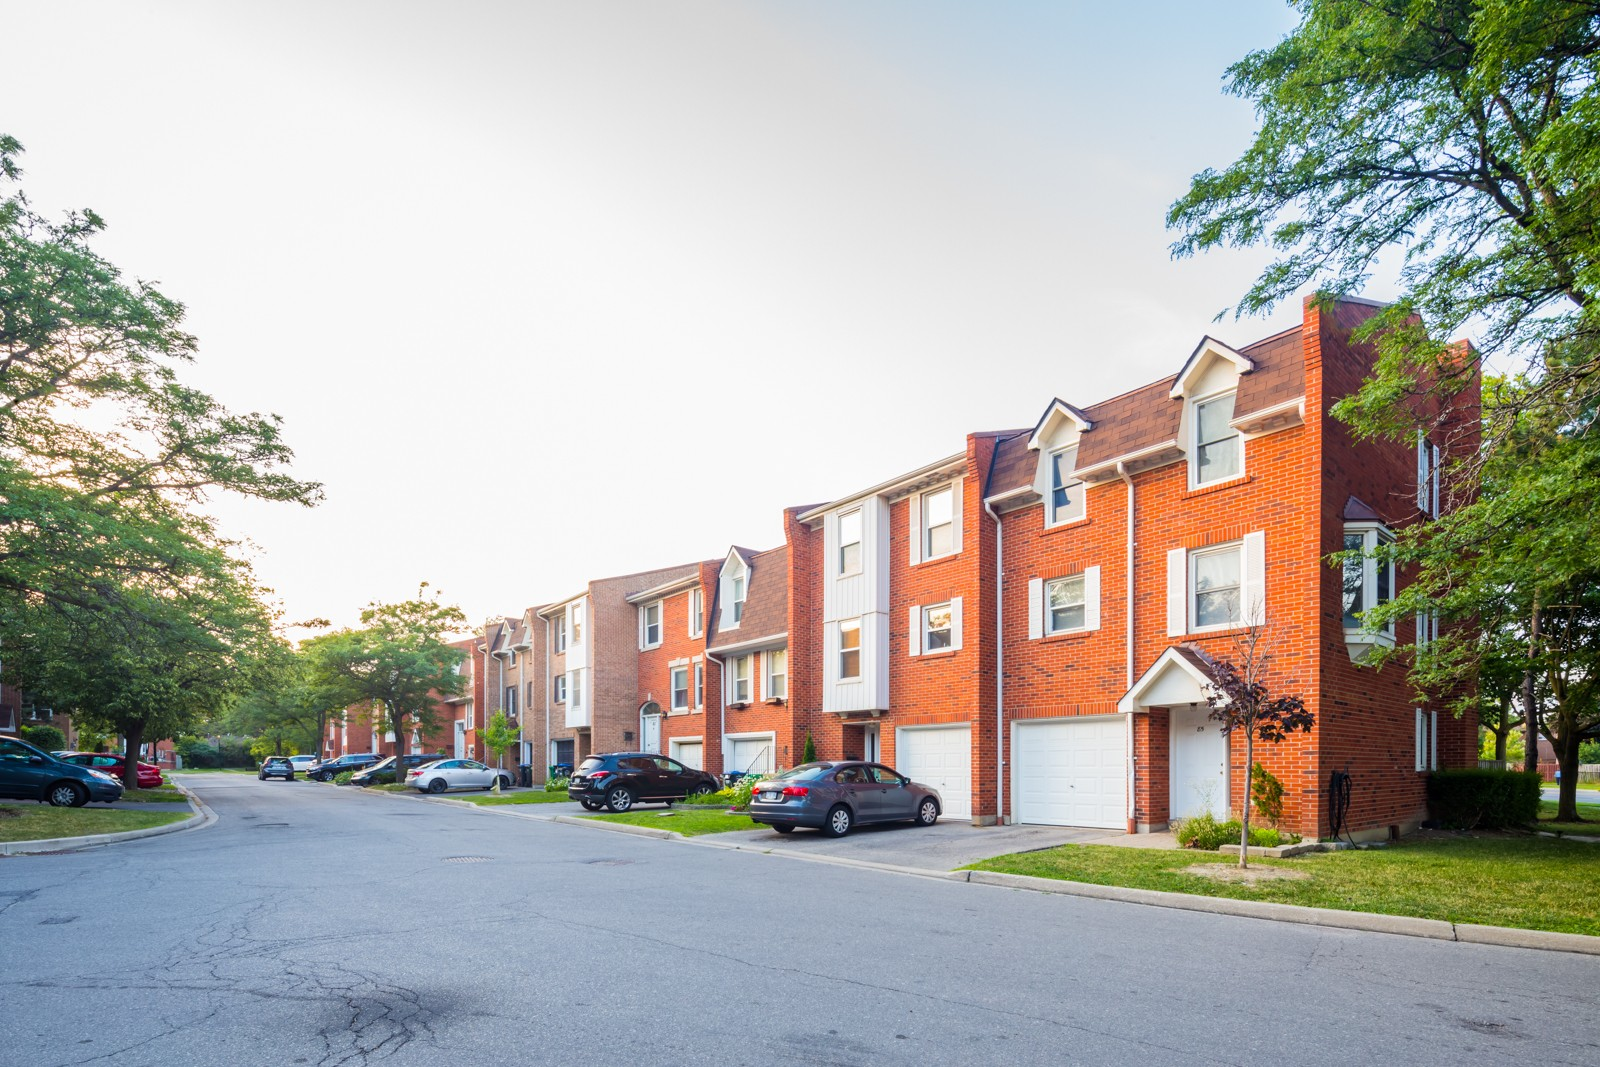 333 Meadows Boulevard Townhouses at 333 Meadows Blvd, Mississauga 1